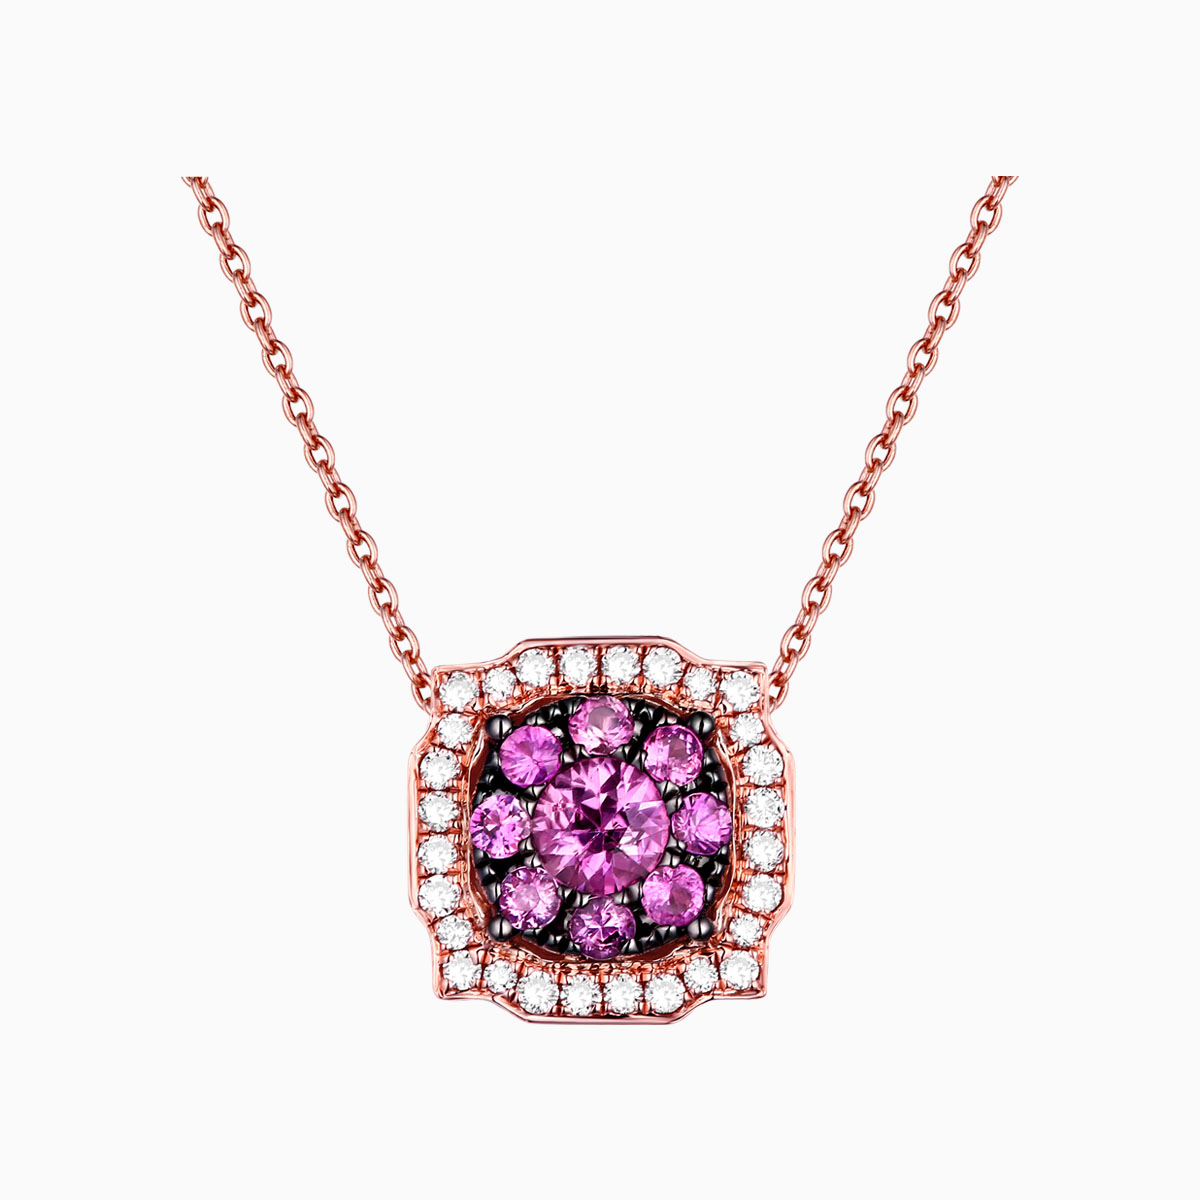 P22152PSA – 14K Rose Gold Diamond Pendant, 0.63 TCW